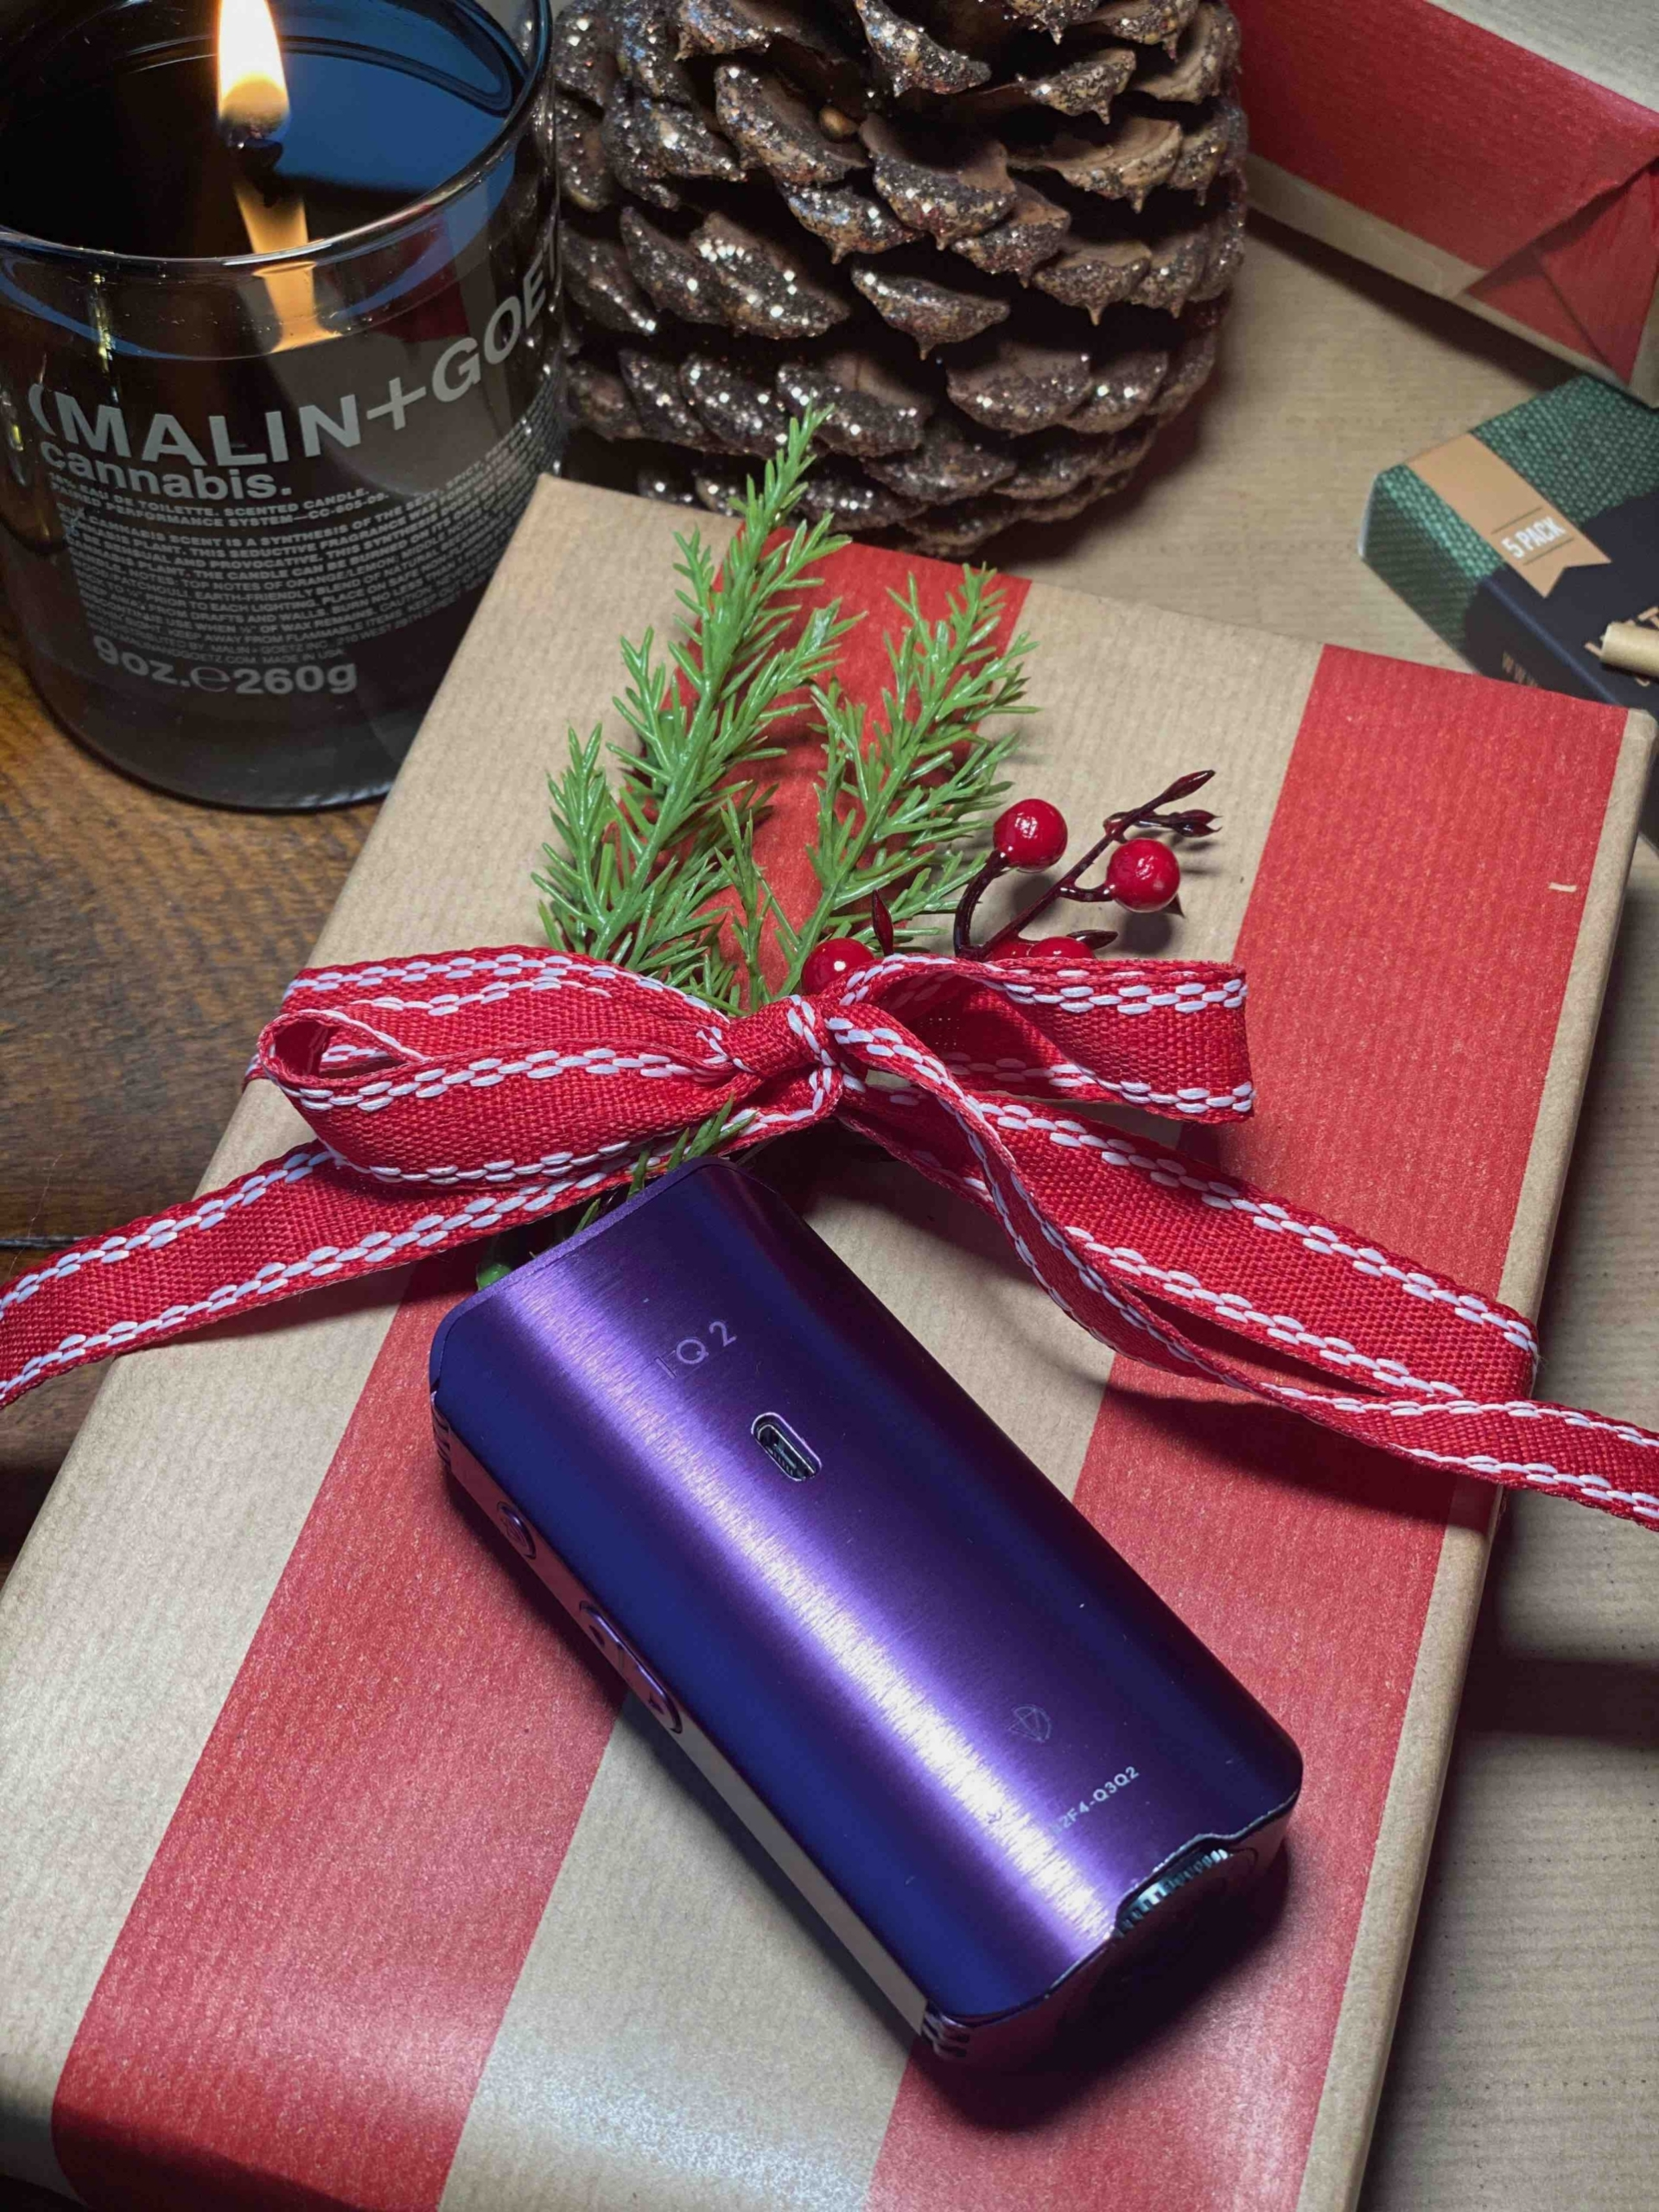 Dope Presents: Unwrap These Cannabis Gifts To Help Soothe This Anxious Year